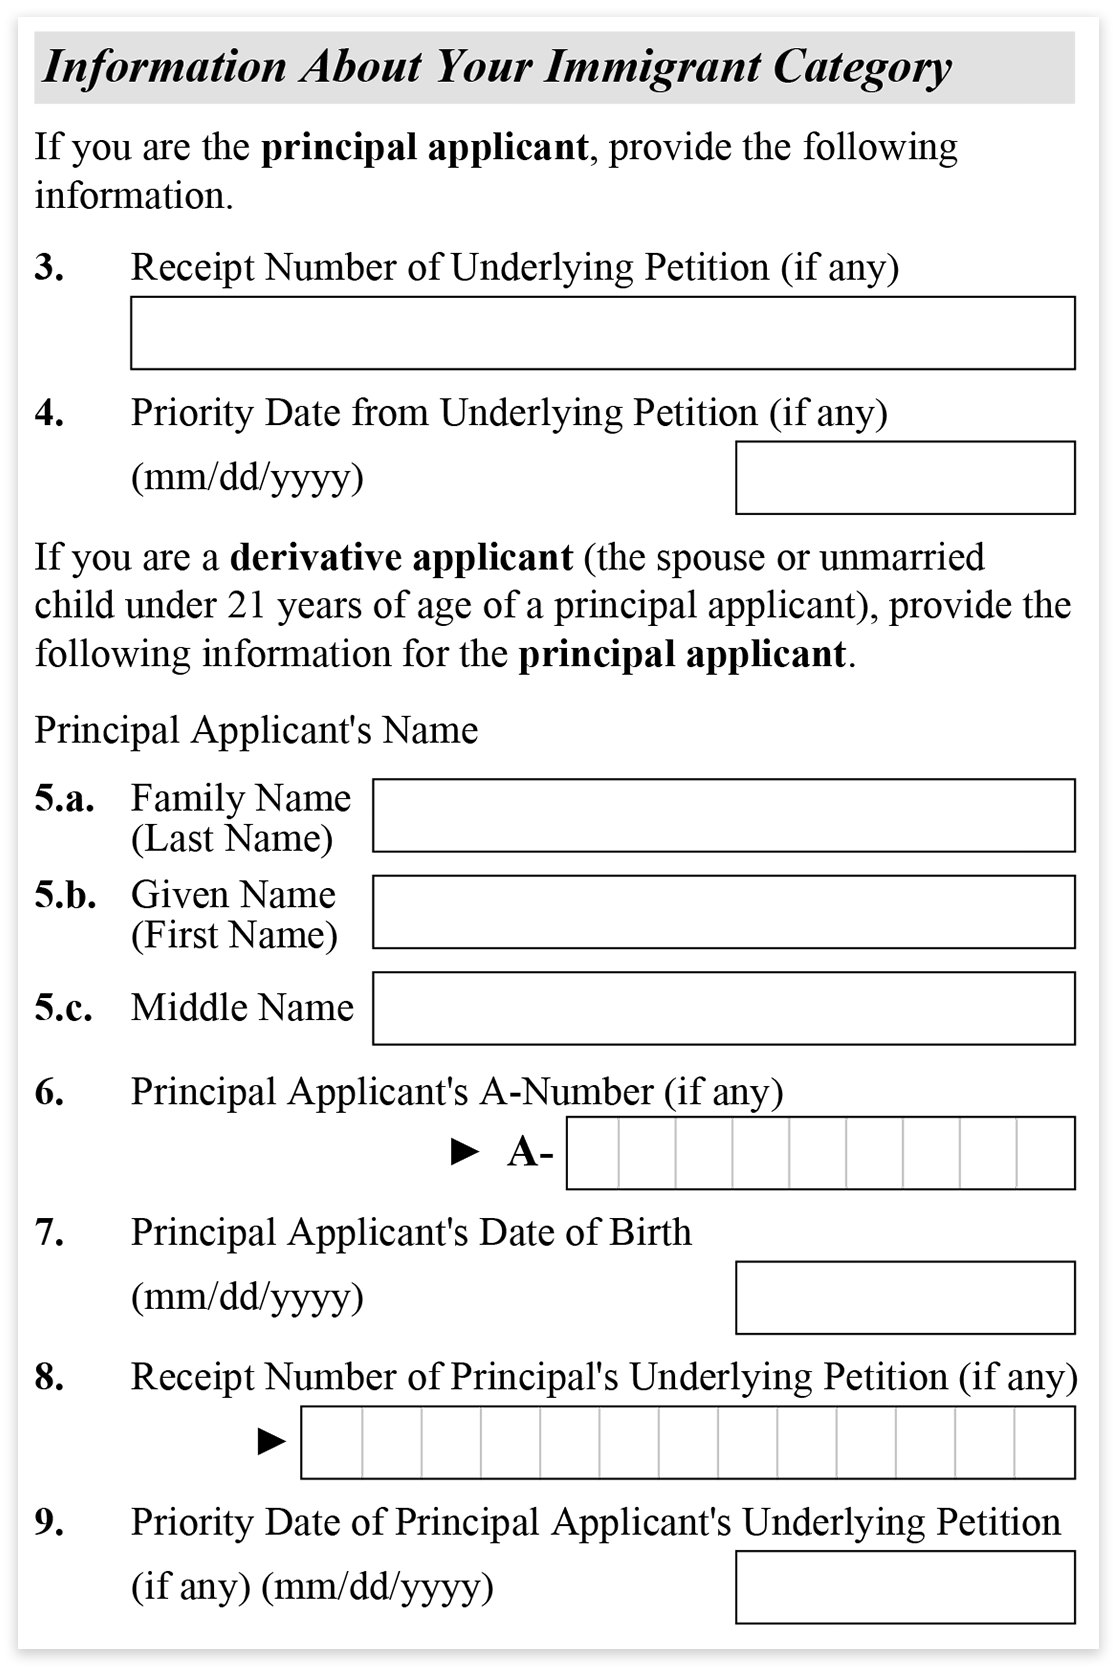 form i 485 receipt number of underlying petition  Form I-17 - part 17 - Information About Your Immigrant ...